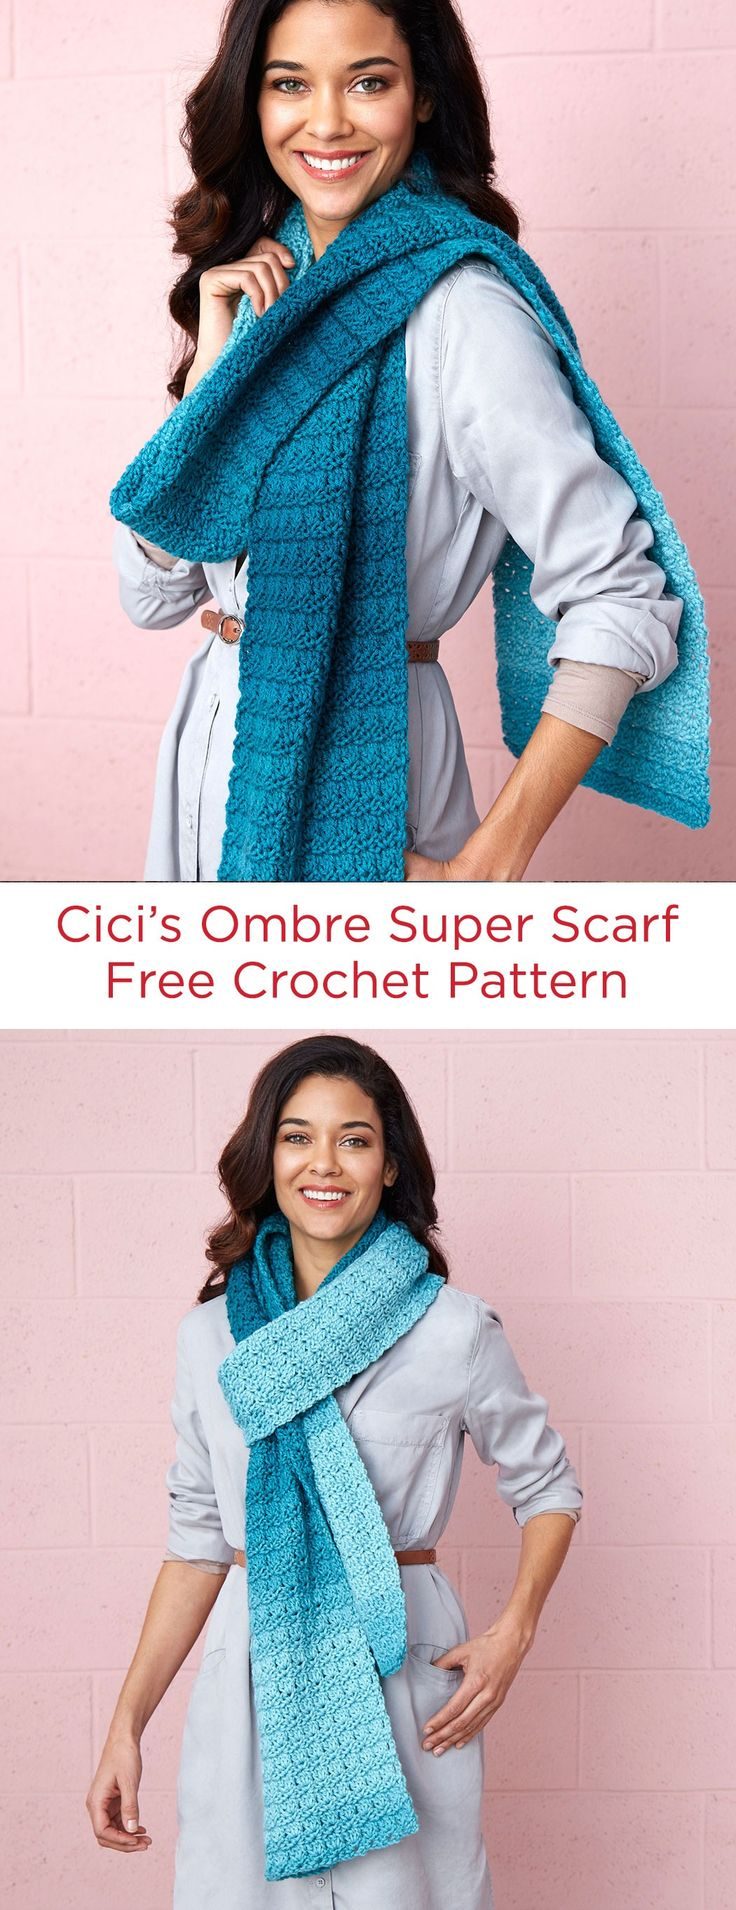 Cici's Ombre Super Scarf Free Crochet Pattern in Red Heart Super Saver Ombré Yarn -- As you crochet with this ombre yarn it changes in value including dark and lighter shades of the same hue. The textured pattern stitch allows the colors to transition beautifully!